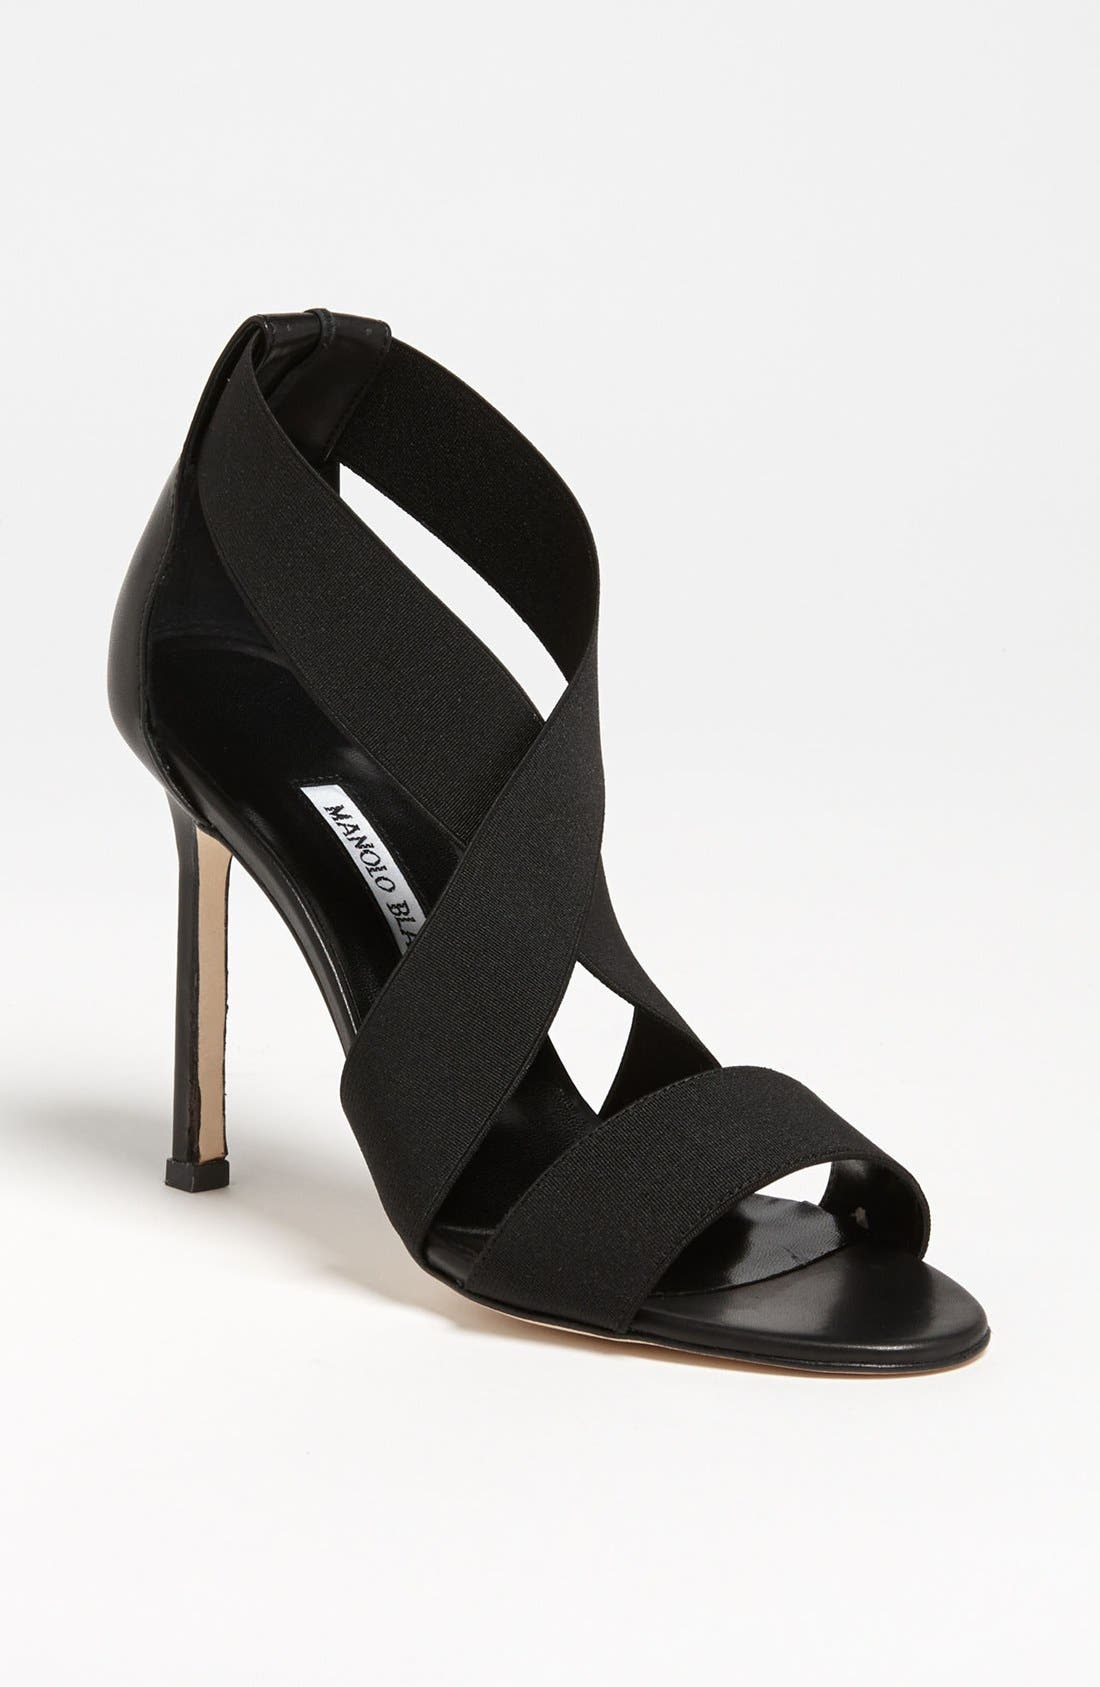 Alternate Image 1 Selected - Manolo Blahnik 'Kandita-Mod' Sandal